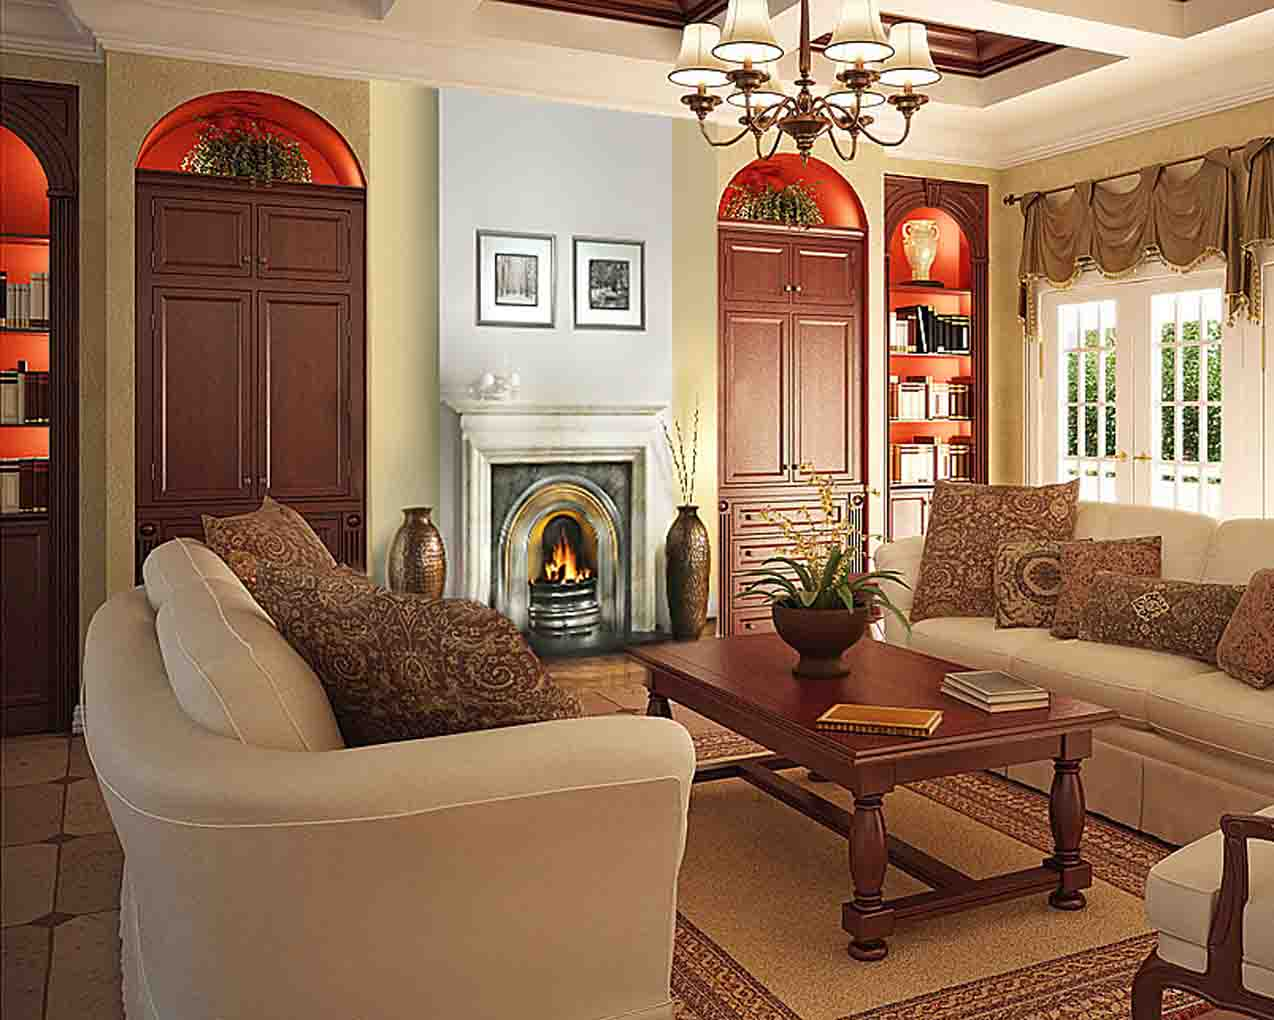 Very small living room ideas pictures4 small room for Very small apartment living room ideas